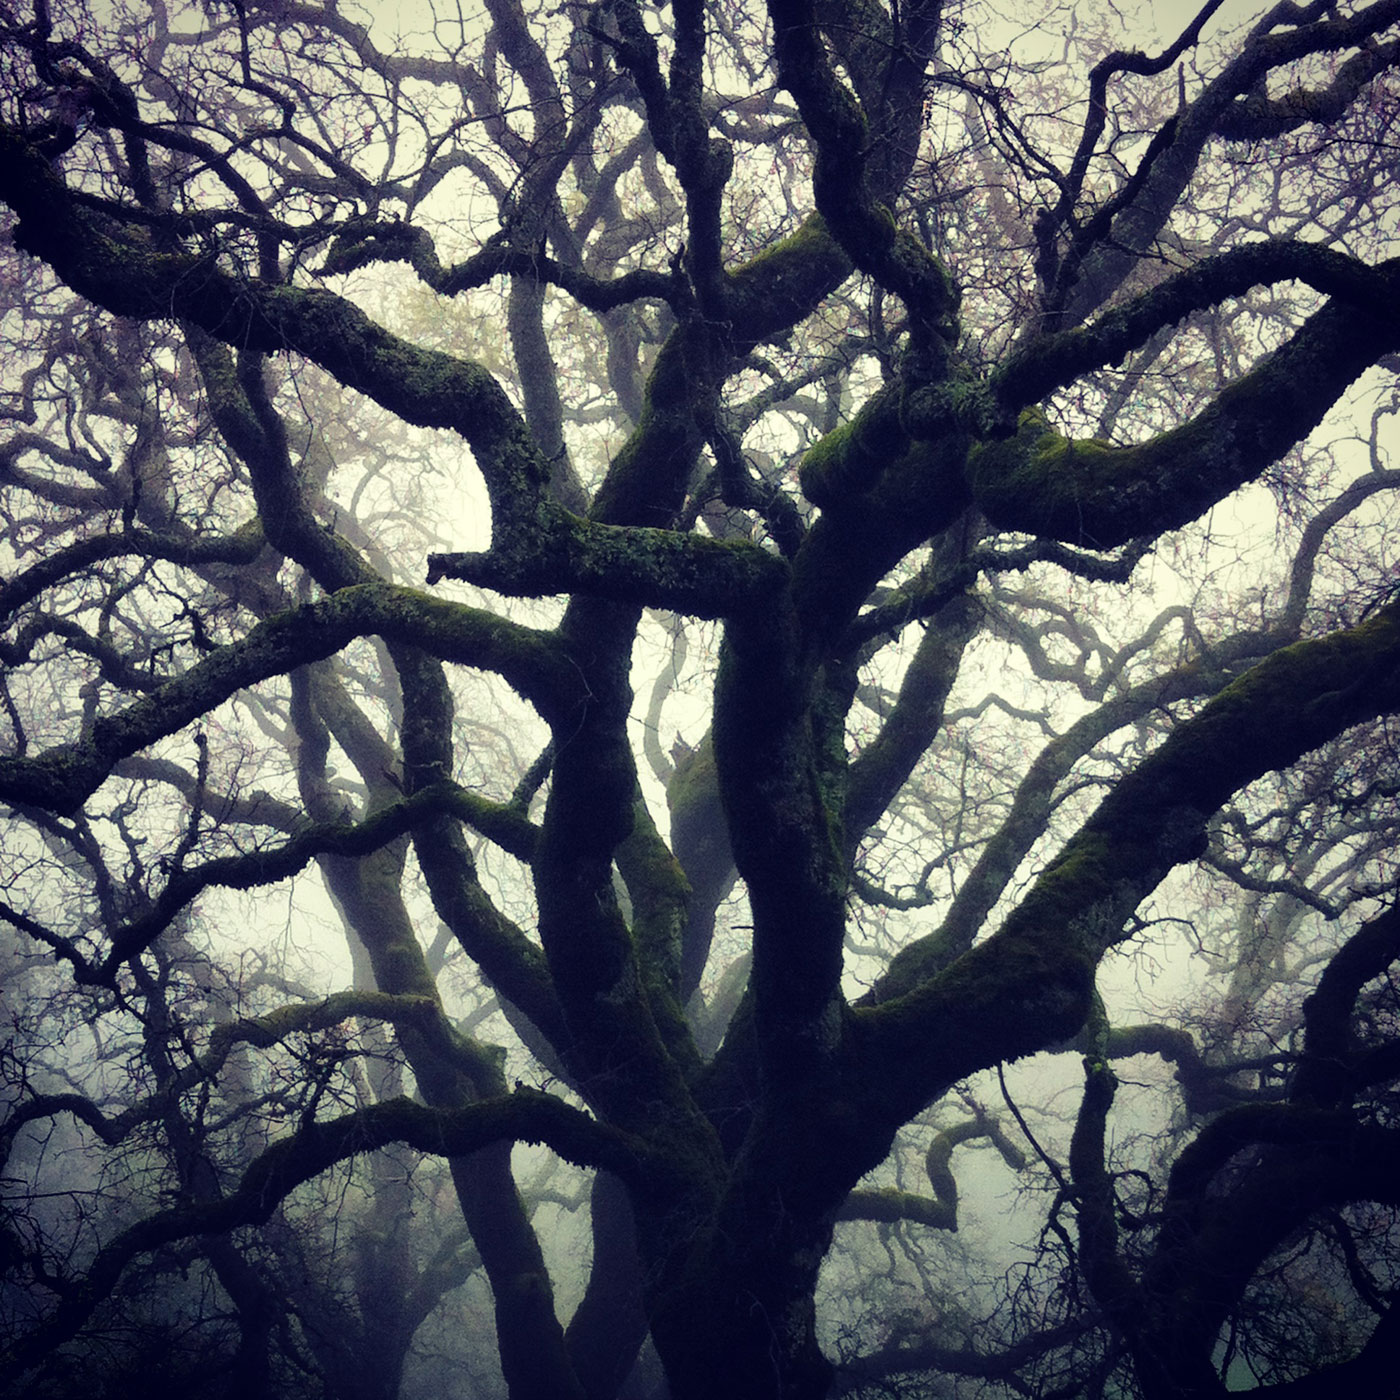 fogged-oaks-large